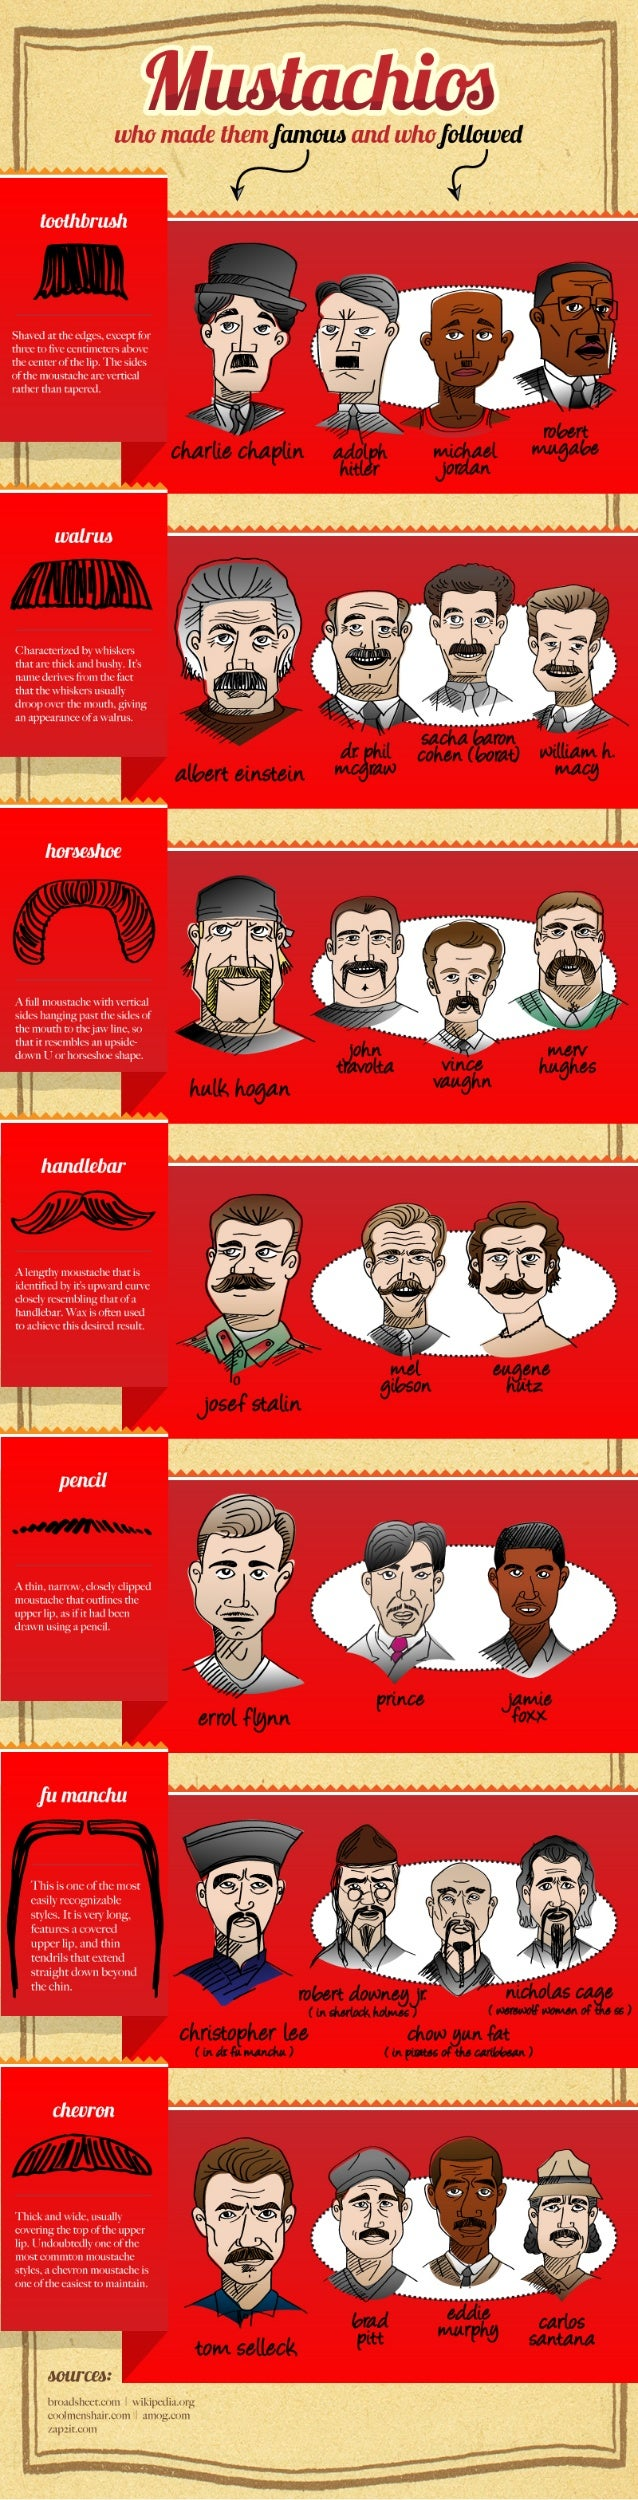 Mustachios - Who Made Them Famous and Who Followed